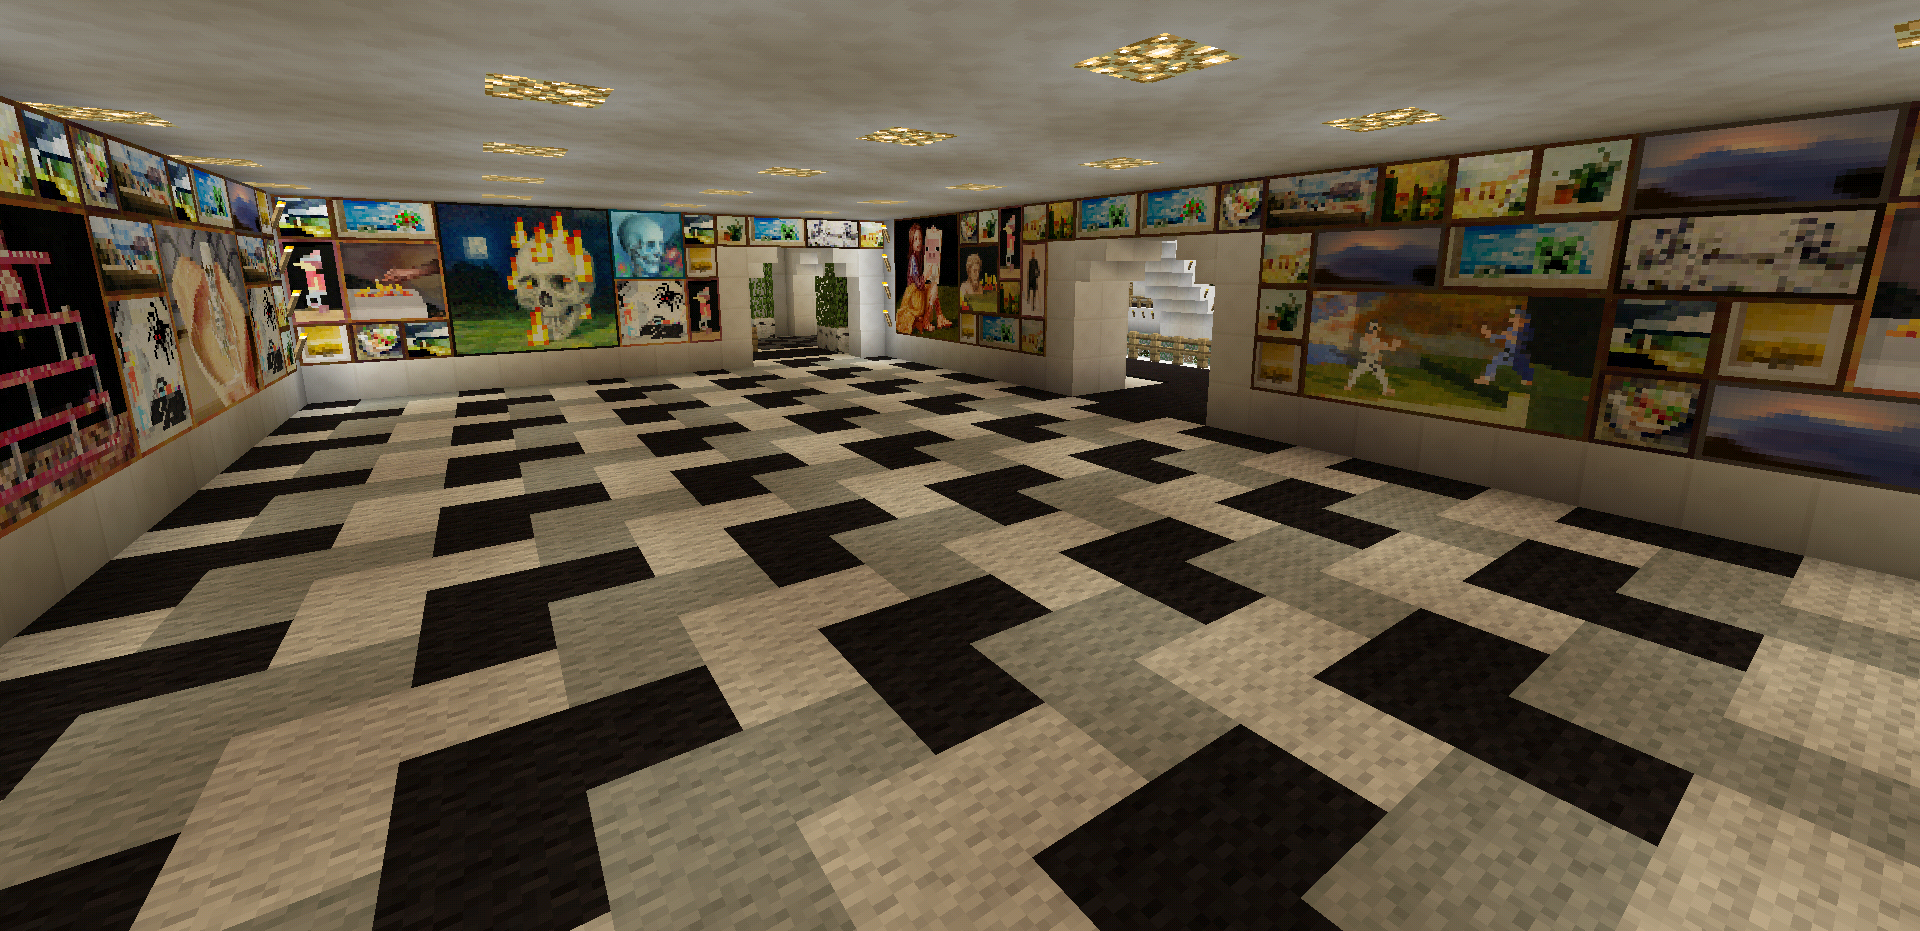 Minecraft Carpet Designs | www.stkittsvilla.com